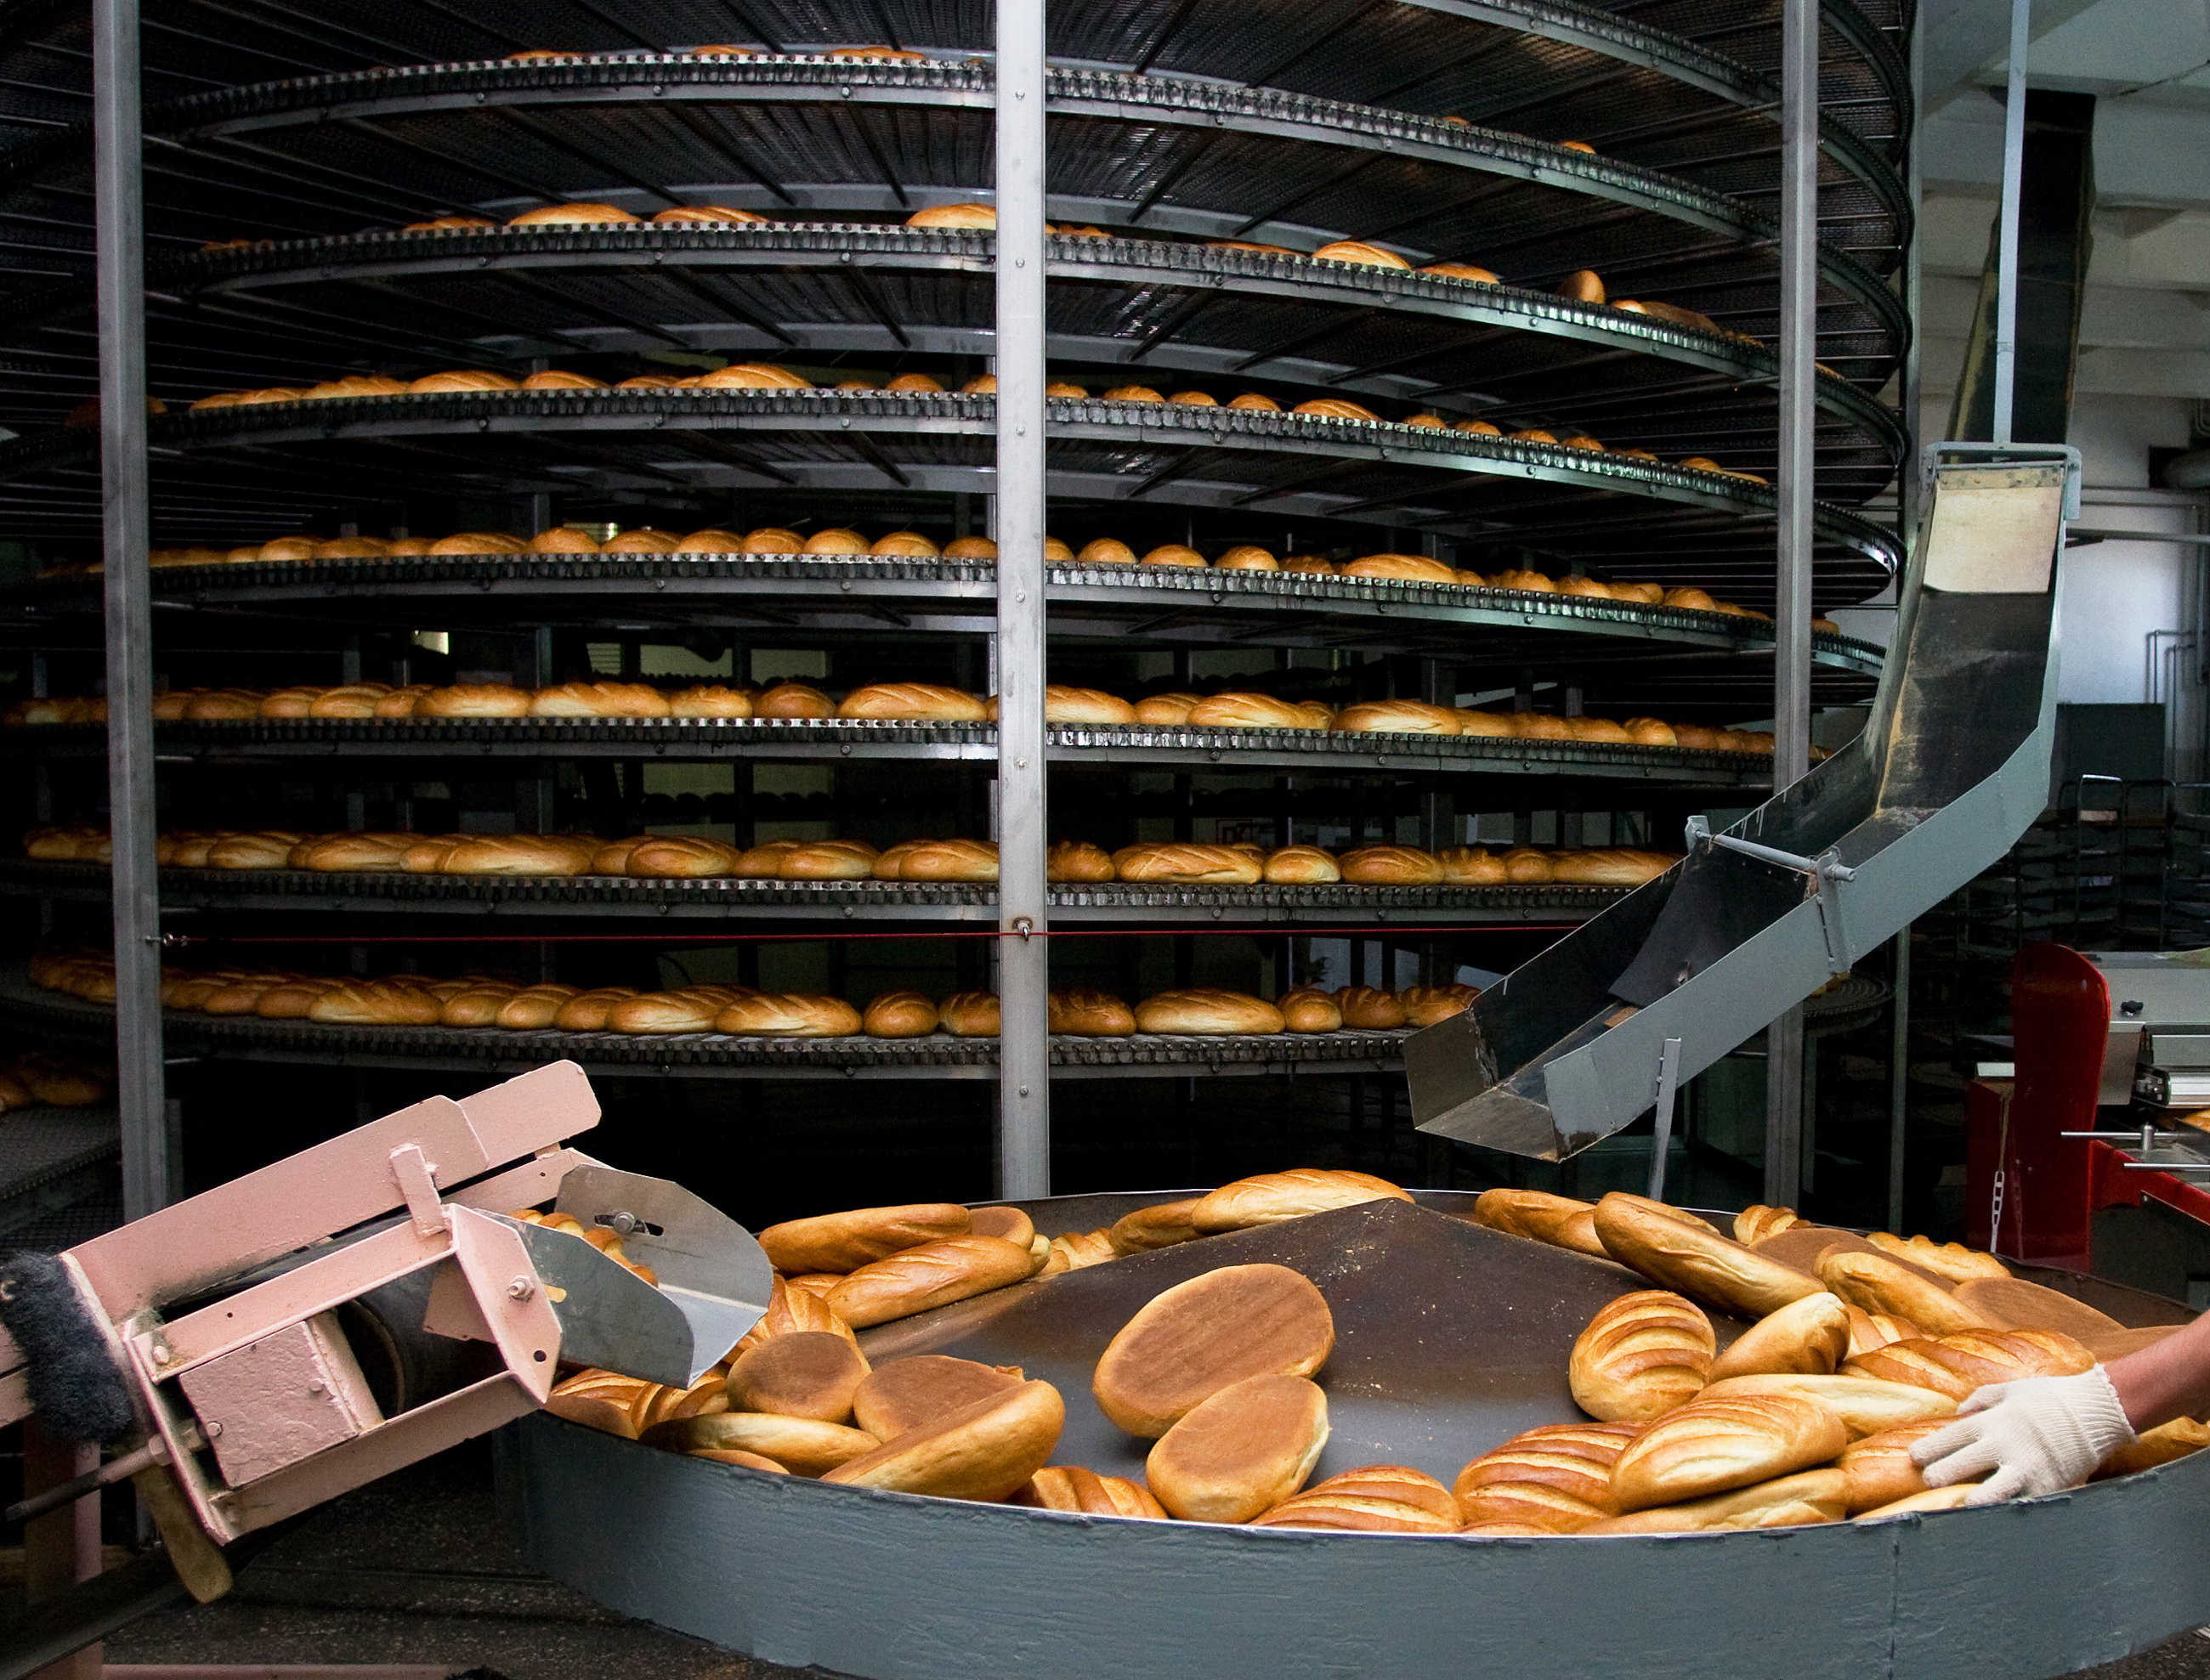 Digital transformation in food manufacturing